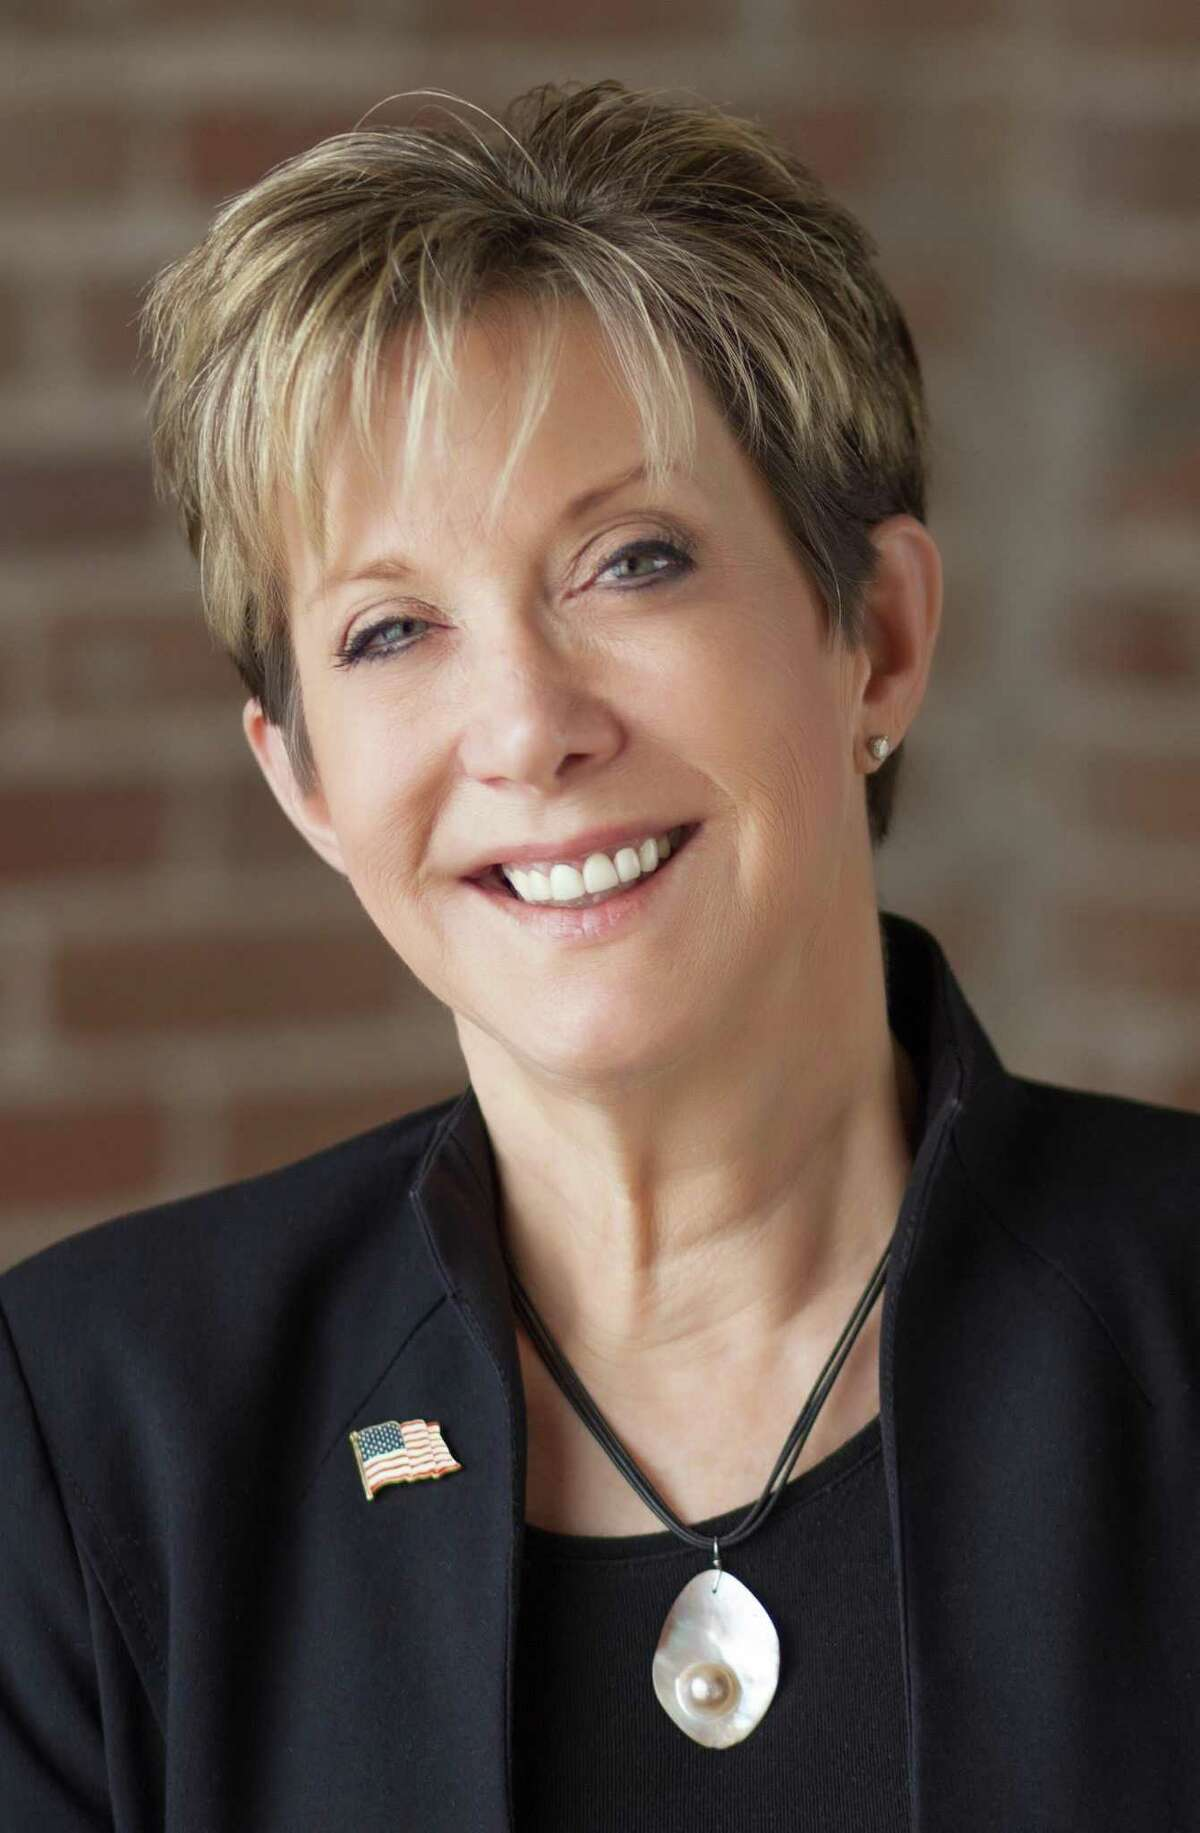 Dayna Steele is the Democratic candidate for Texas' 36th Congressional District.